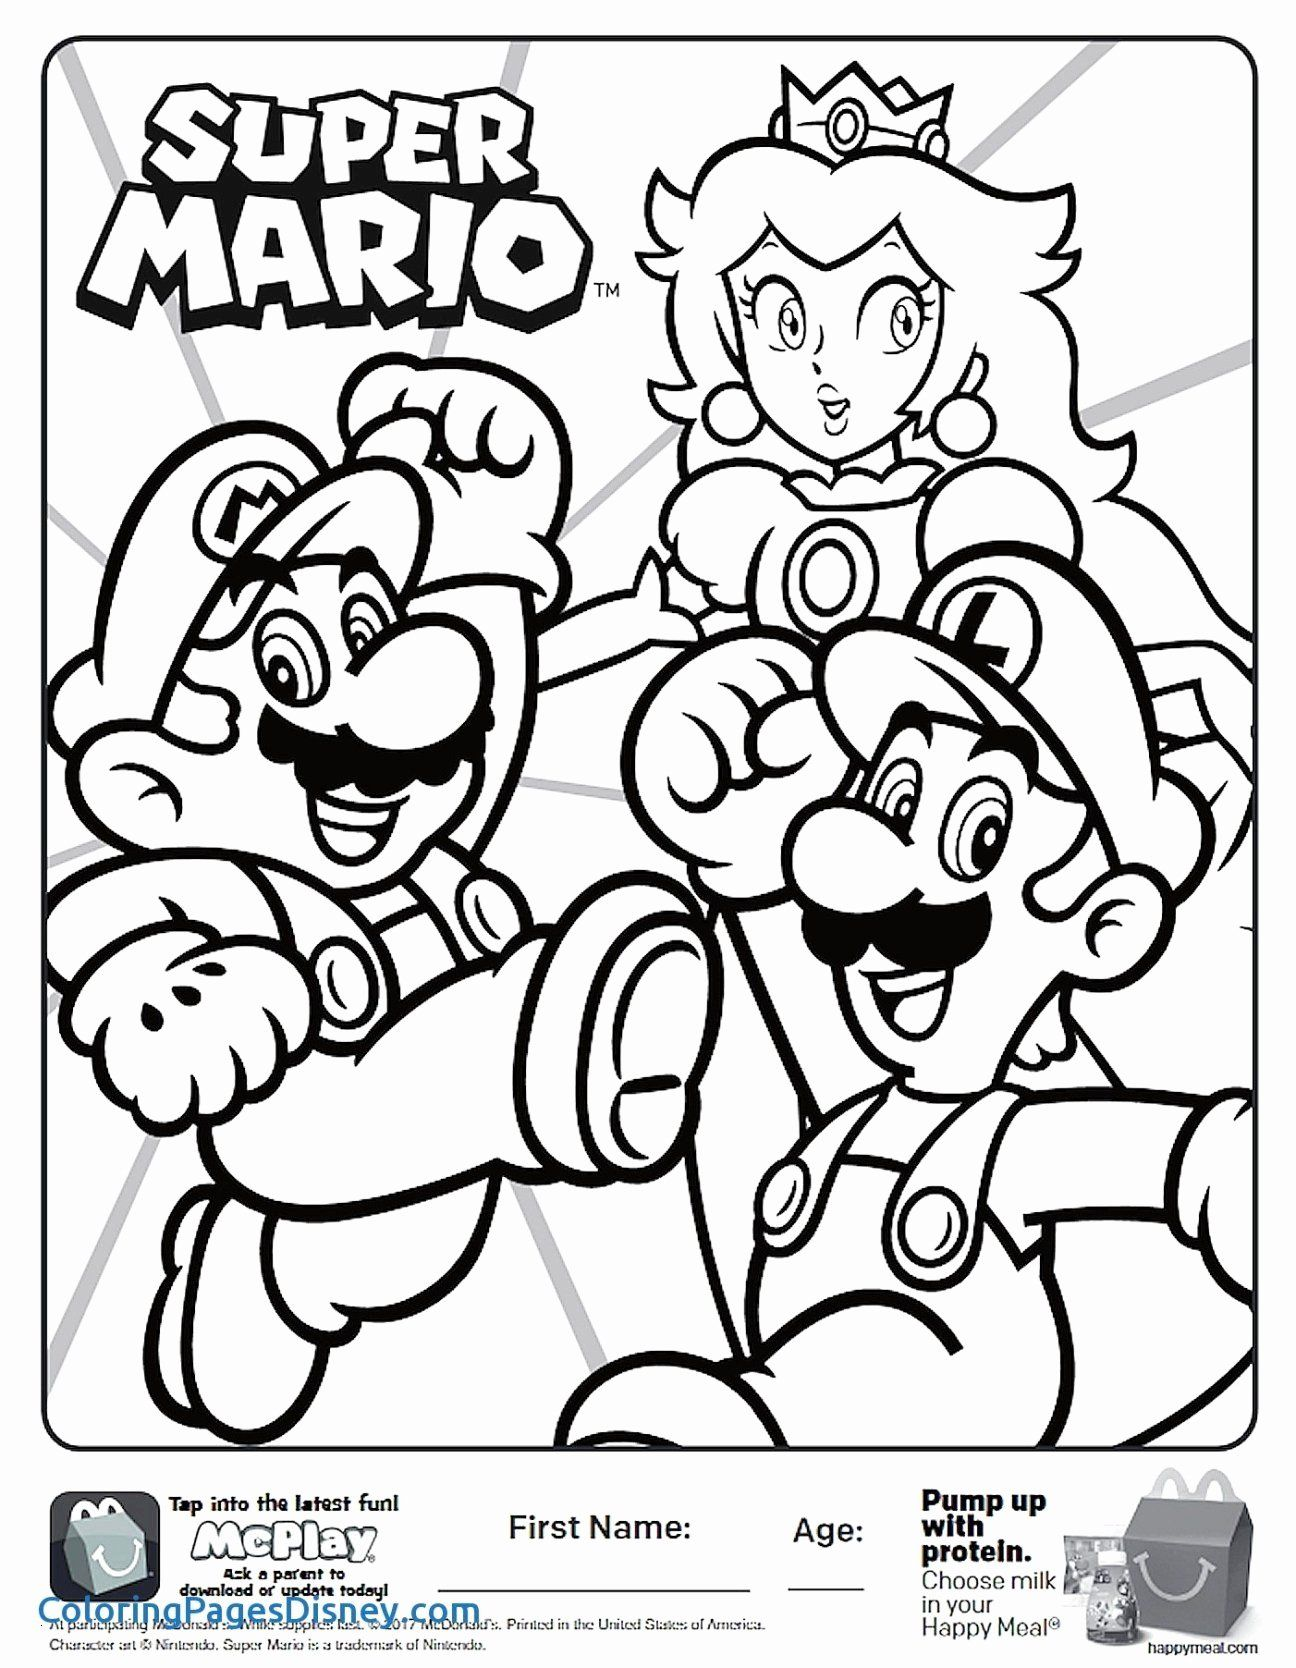 Wedding Coloring Pages Free Printable Luxury Coloring Wedding Coloring Pages Luxury Boo Super Mario Coloring Pages Mario Coloring Pages Avengers Coloring Pages